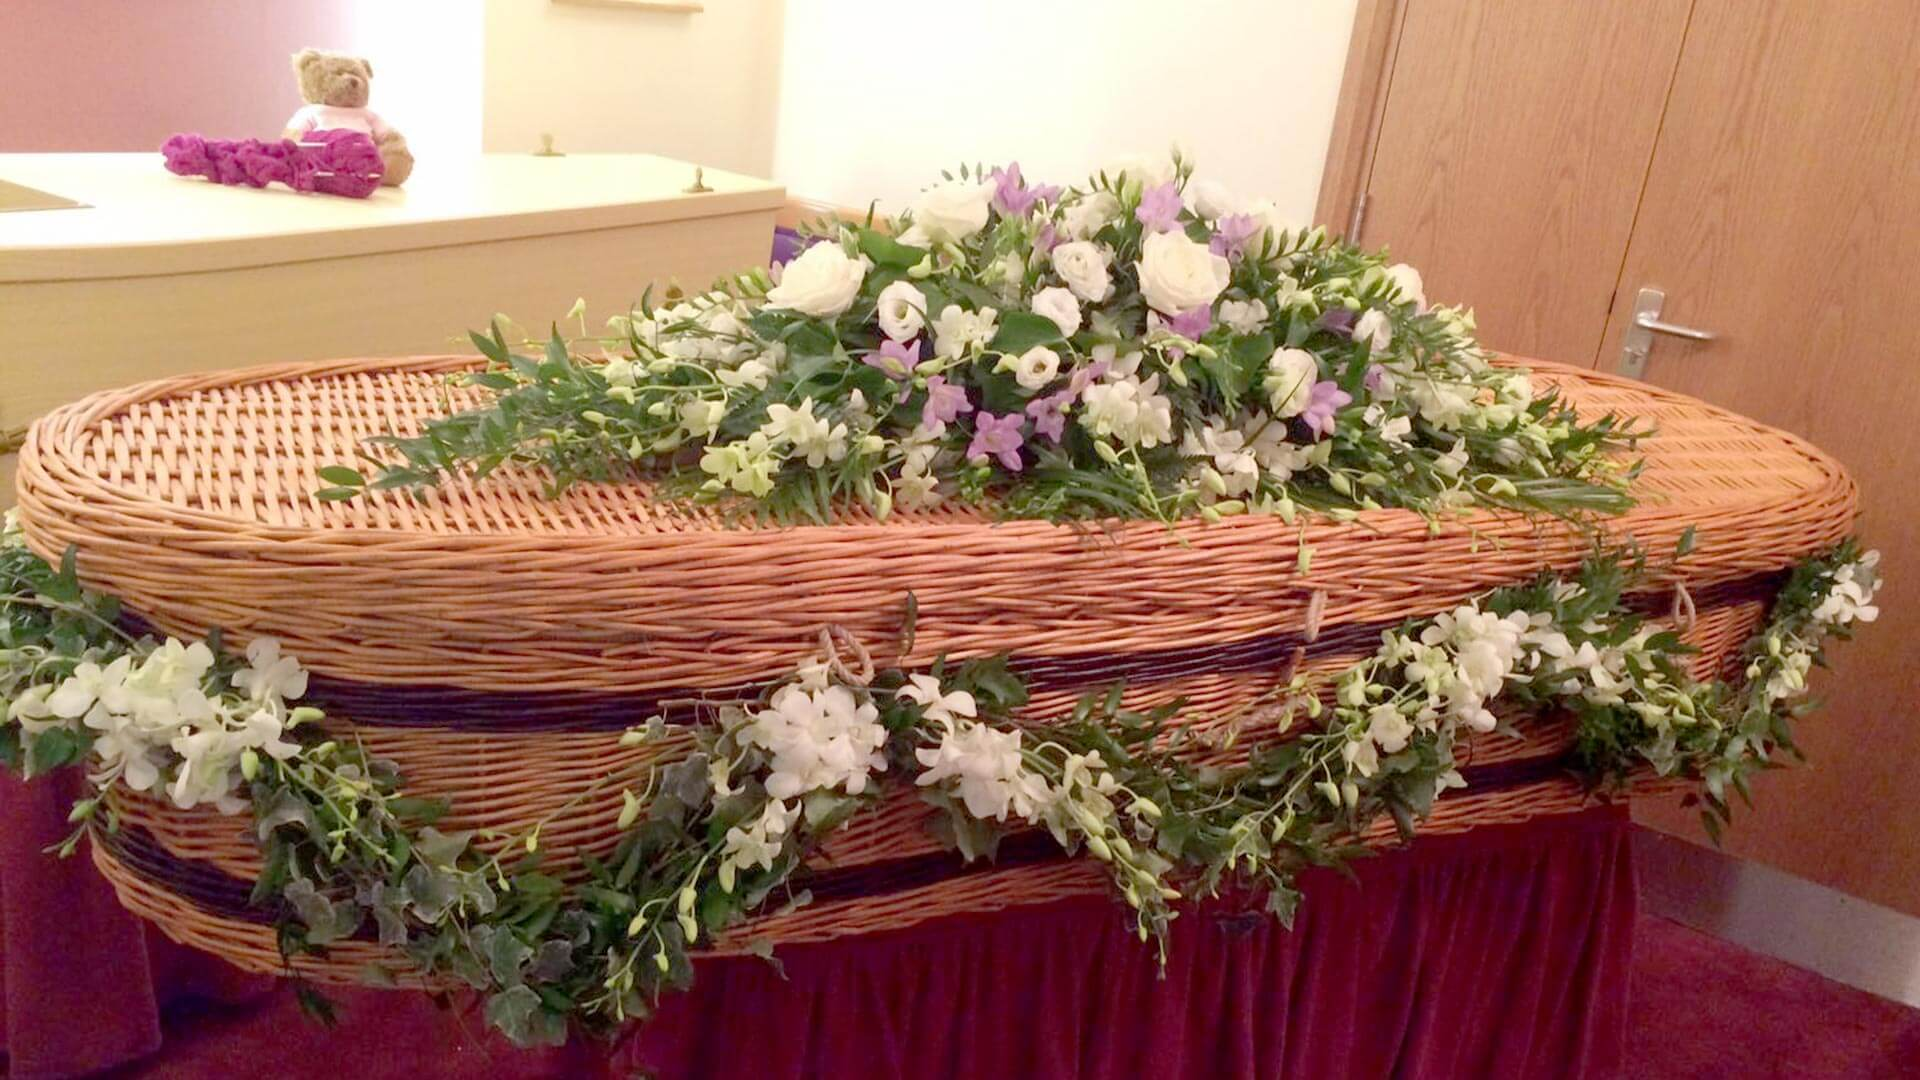 Funerals bbl design ecommerce your order from booking right through to delivery working closely with you and your funeral director ensuring we have all the details available to izmirmasajfo